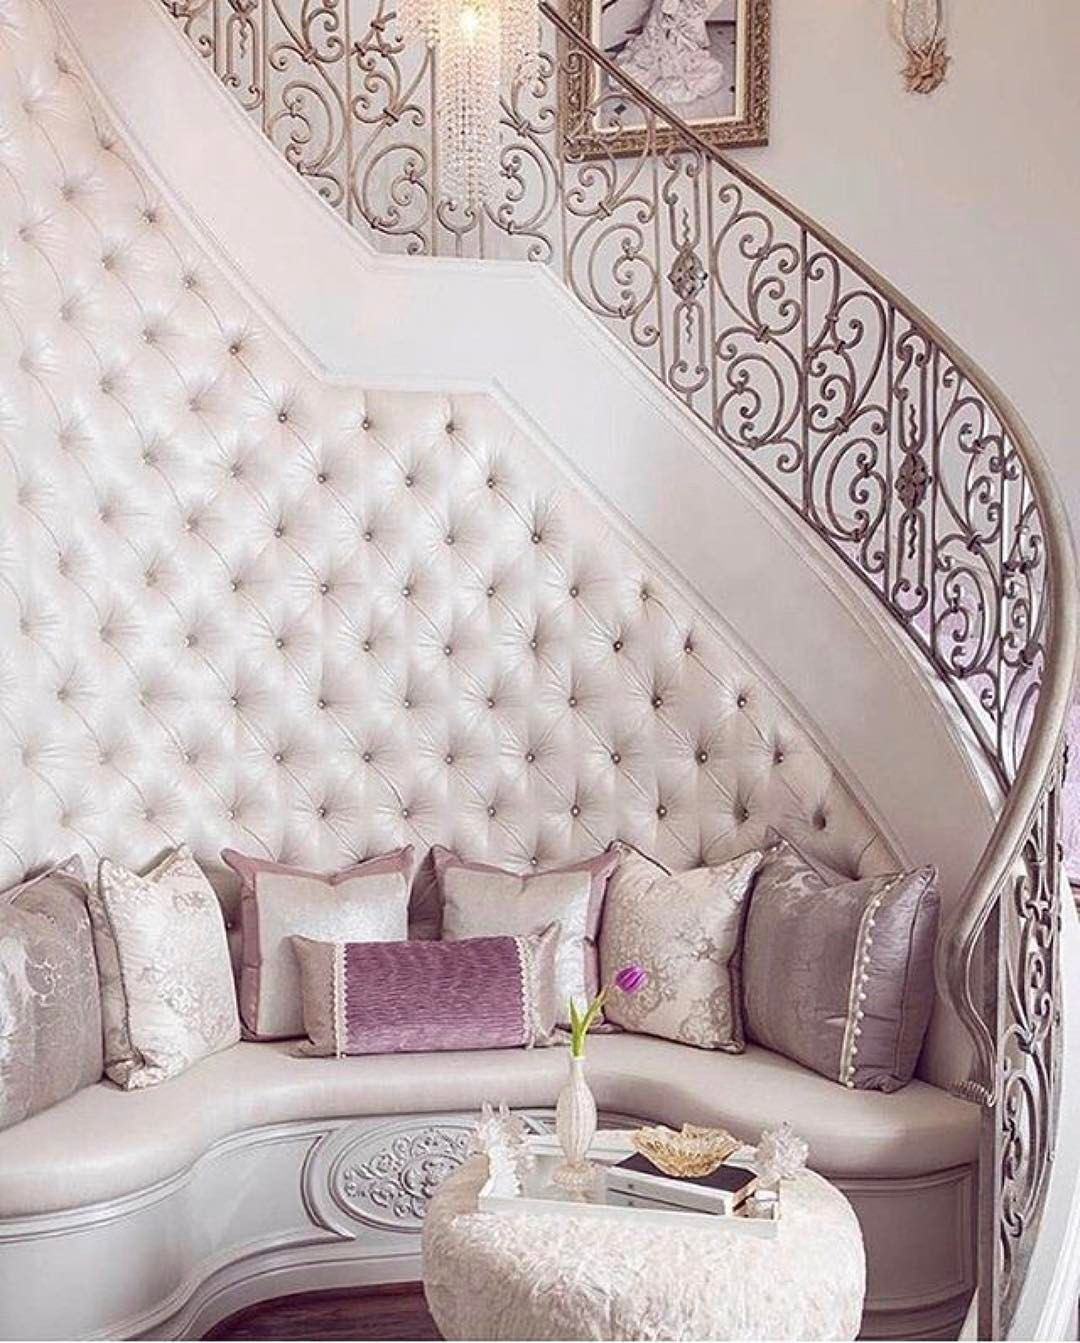 Pin by Em on Interior Design | Pinterest | Staircases, Luxury and ...